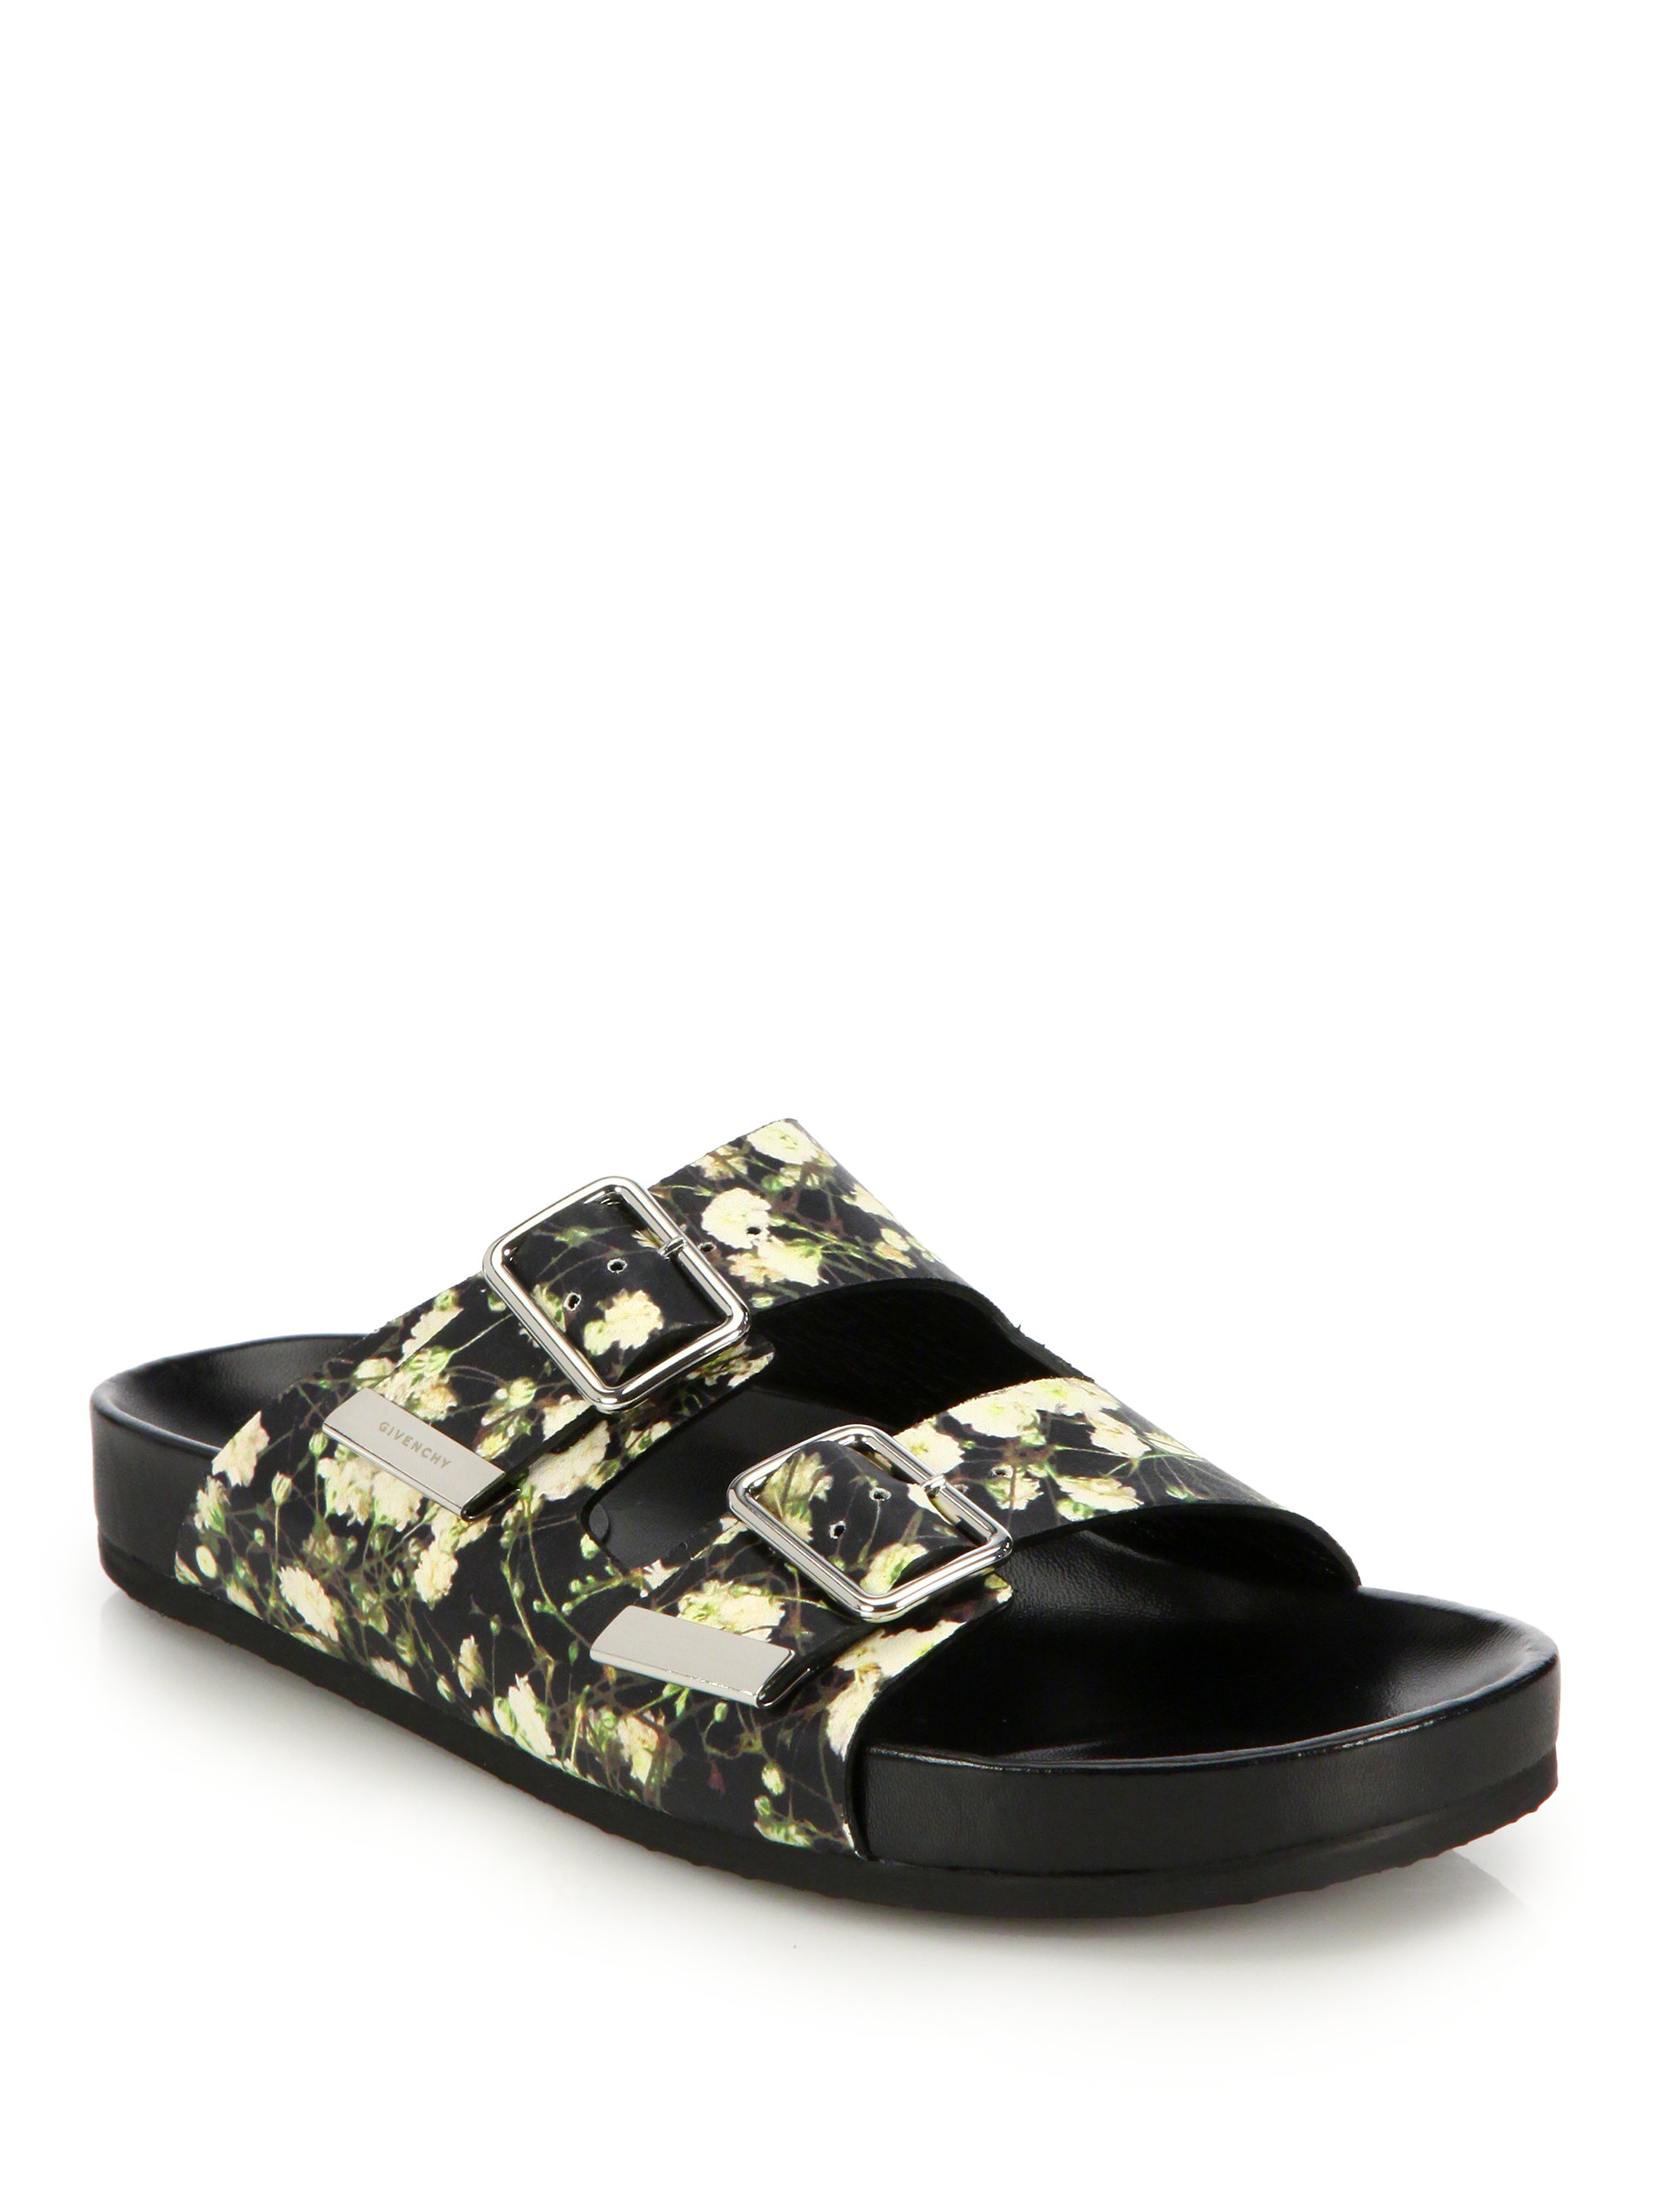 Givenchy Baby's Breath Printed Leather Slide Sandals | Lyst